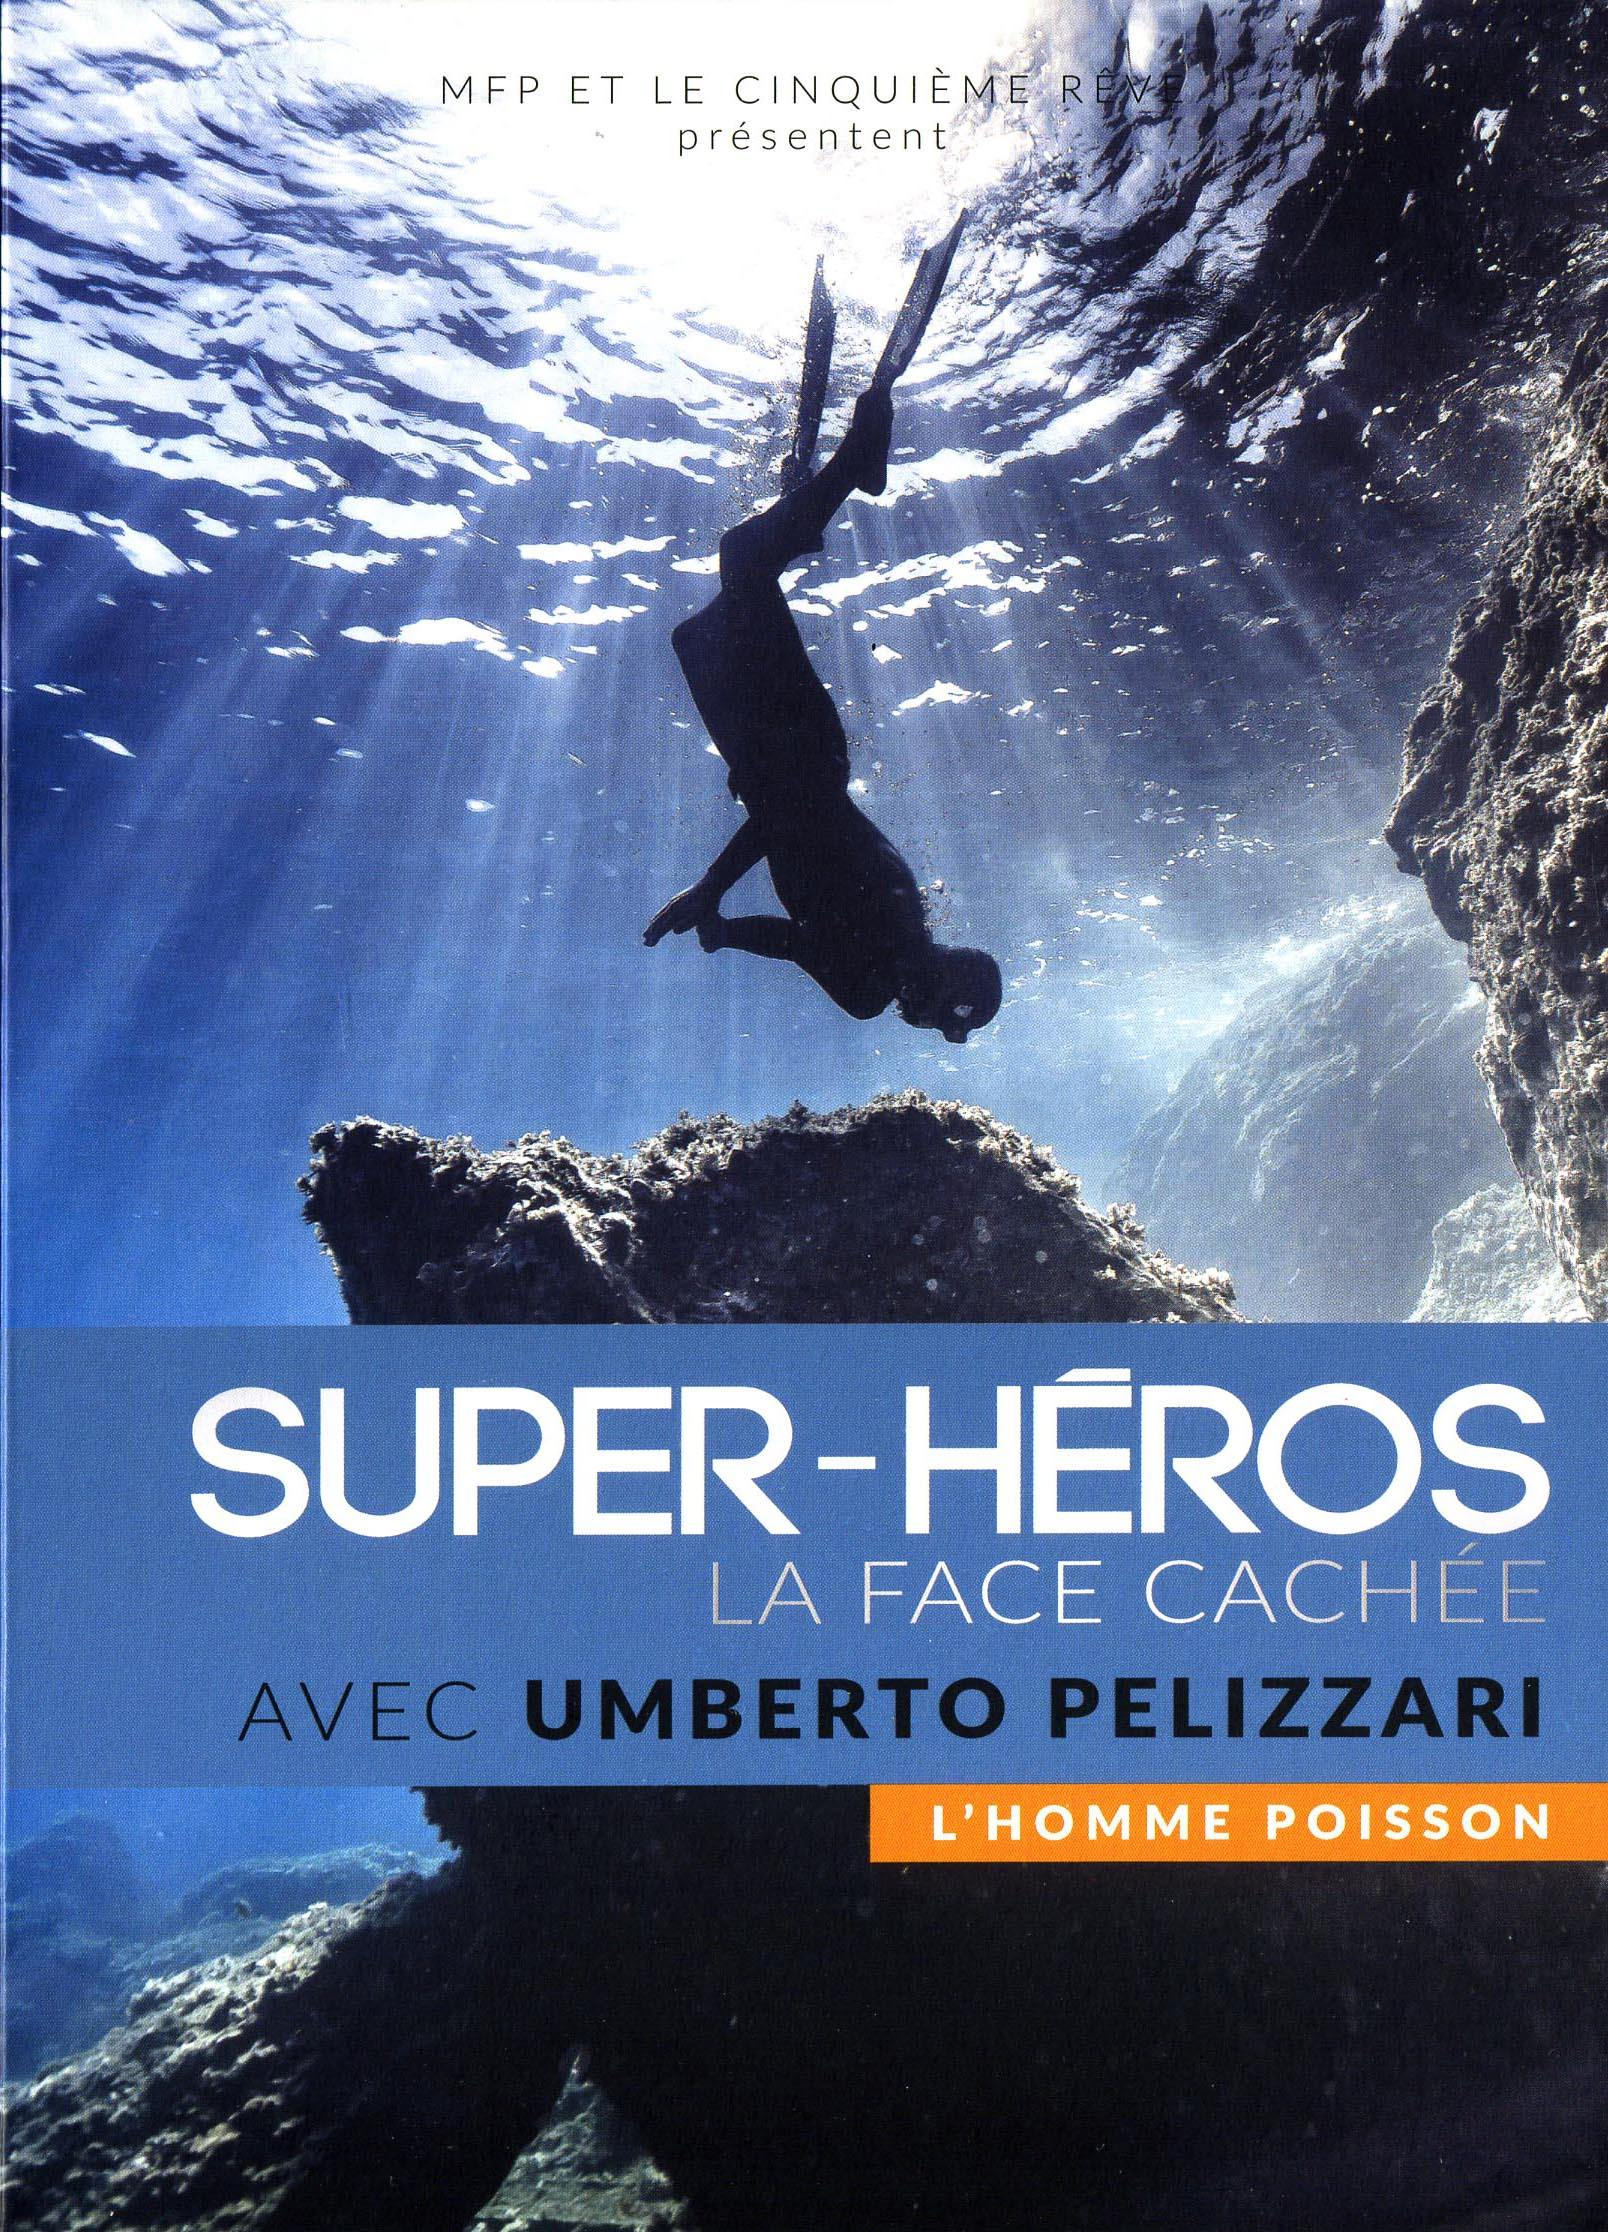 Homme-poisson (l') - super heros la face cachee - dvd